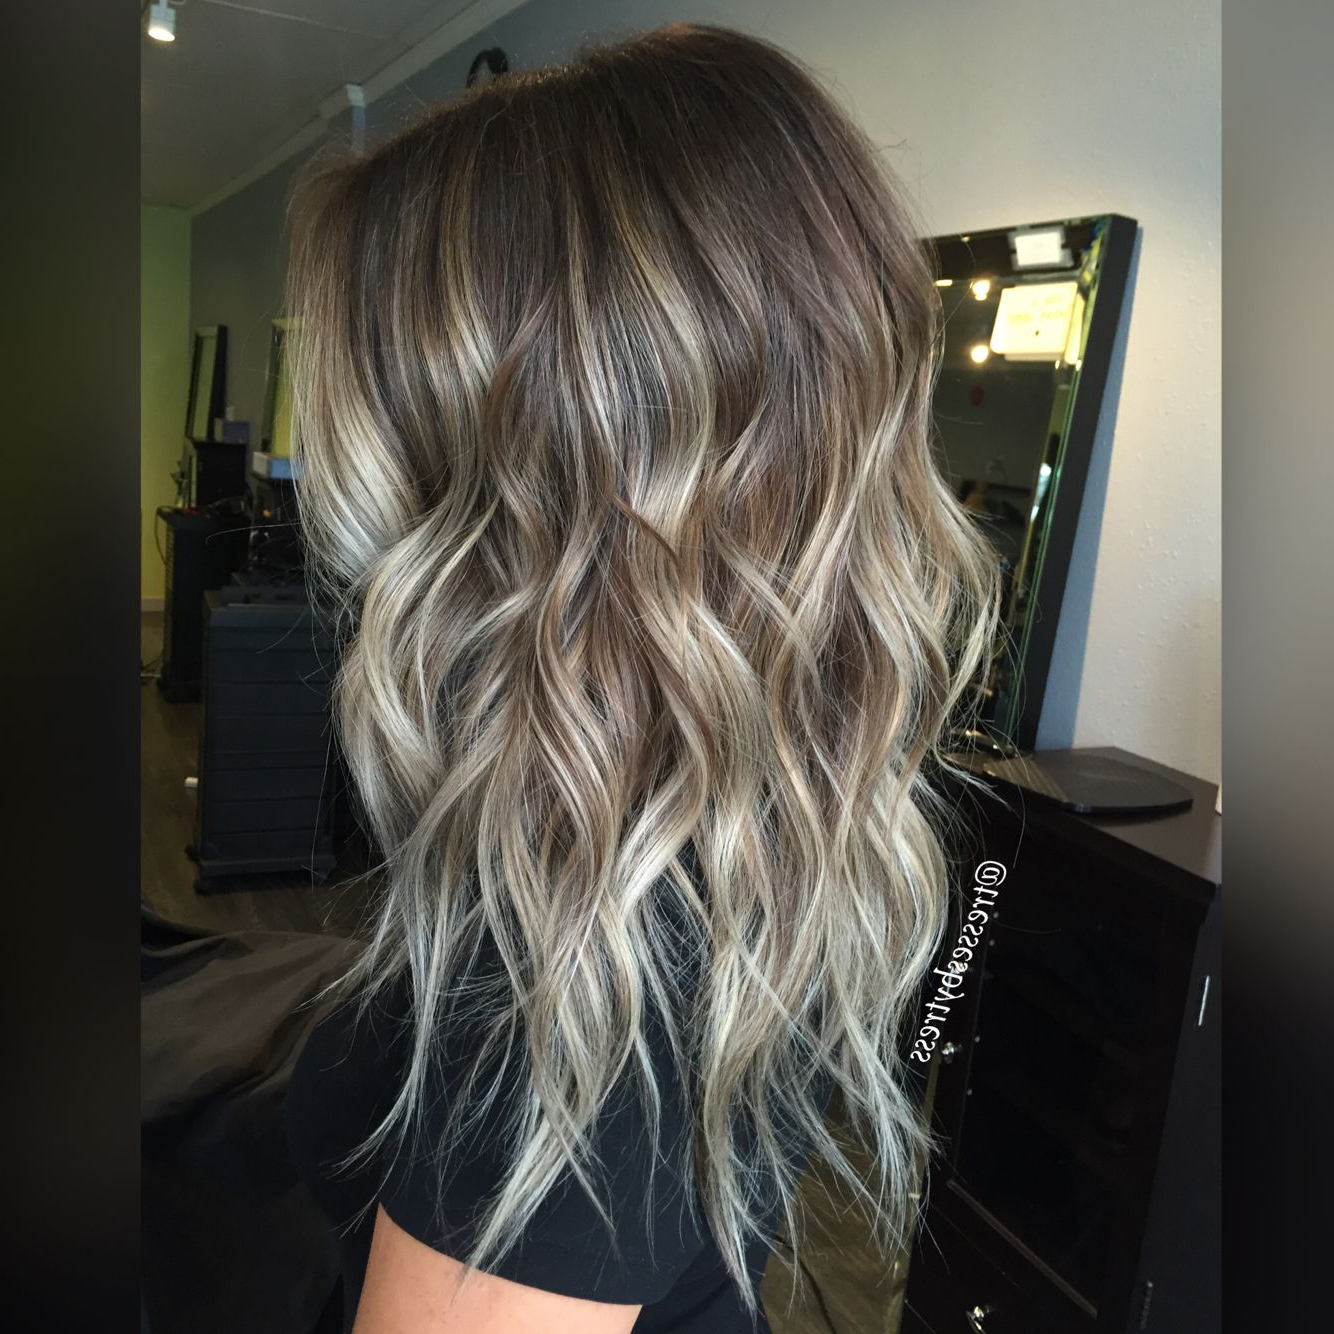 Haar Ideen, Balayage Und With Well Known Ash Bronde Ombre Hairstyles (View 8 of 20)